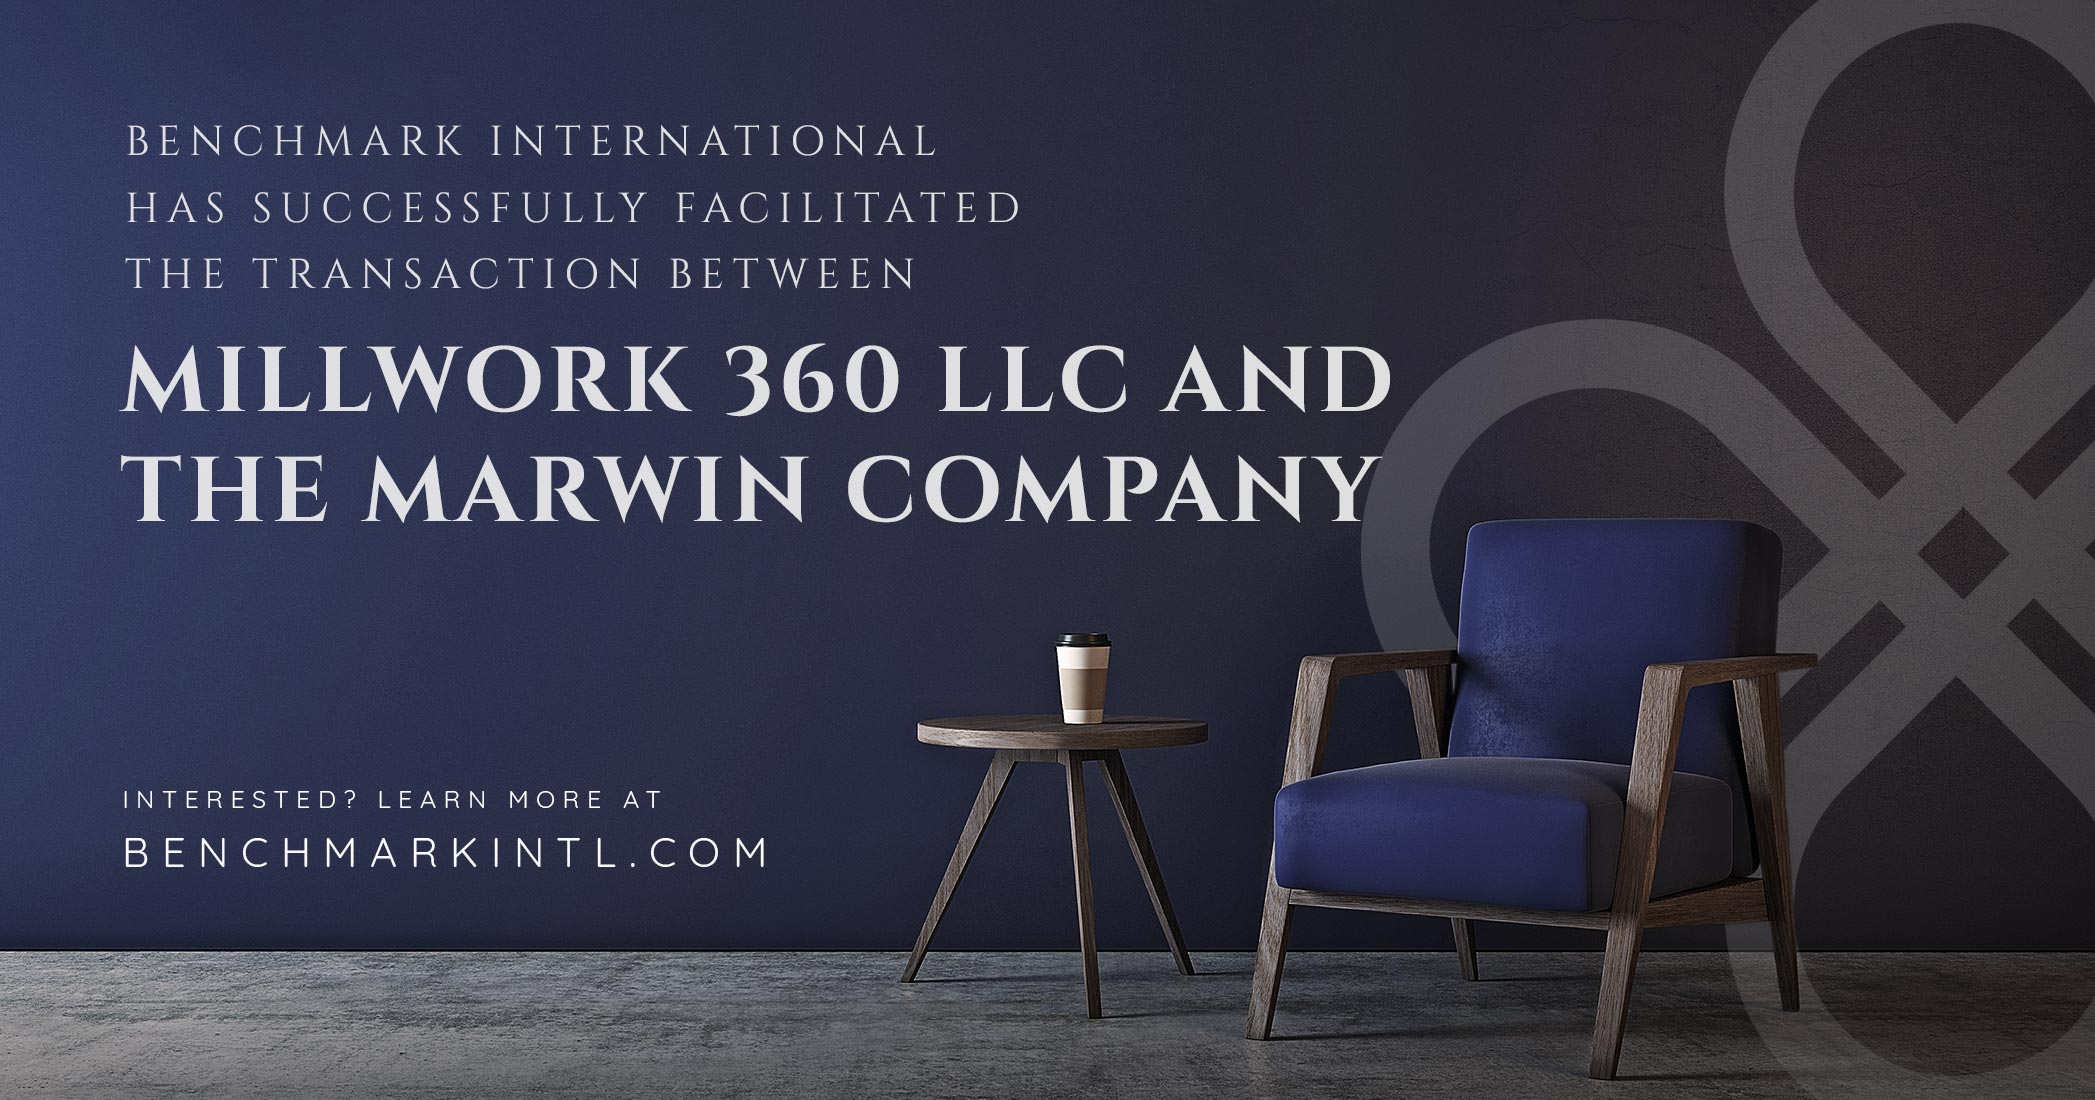 Benchmark International Successfully Facilitated the Transaction Between Millwork 360 LLC and The Marwin Company